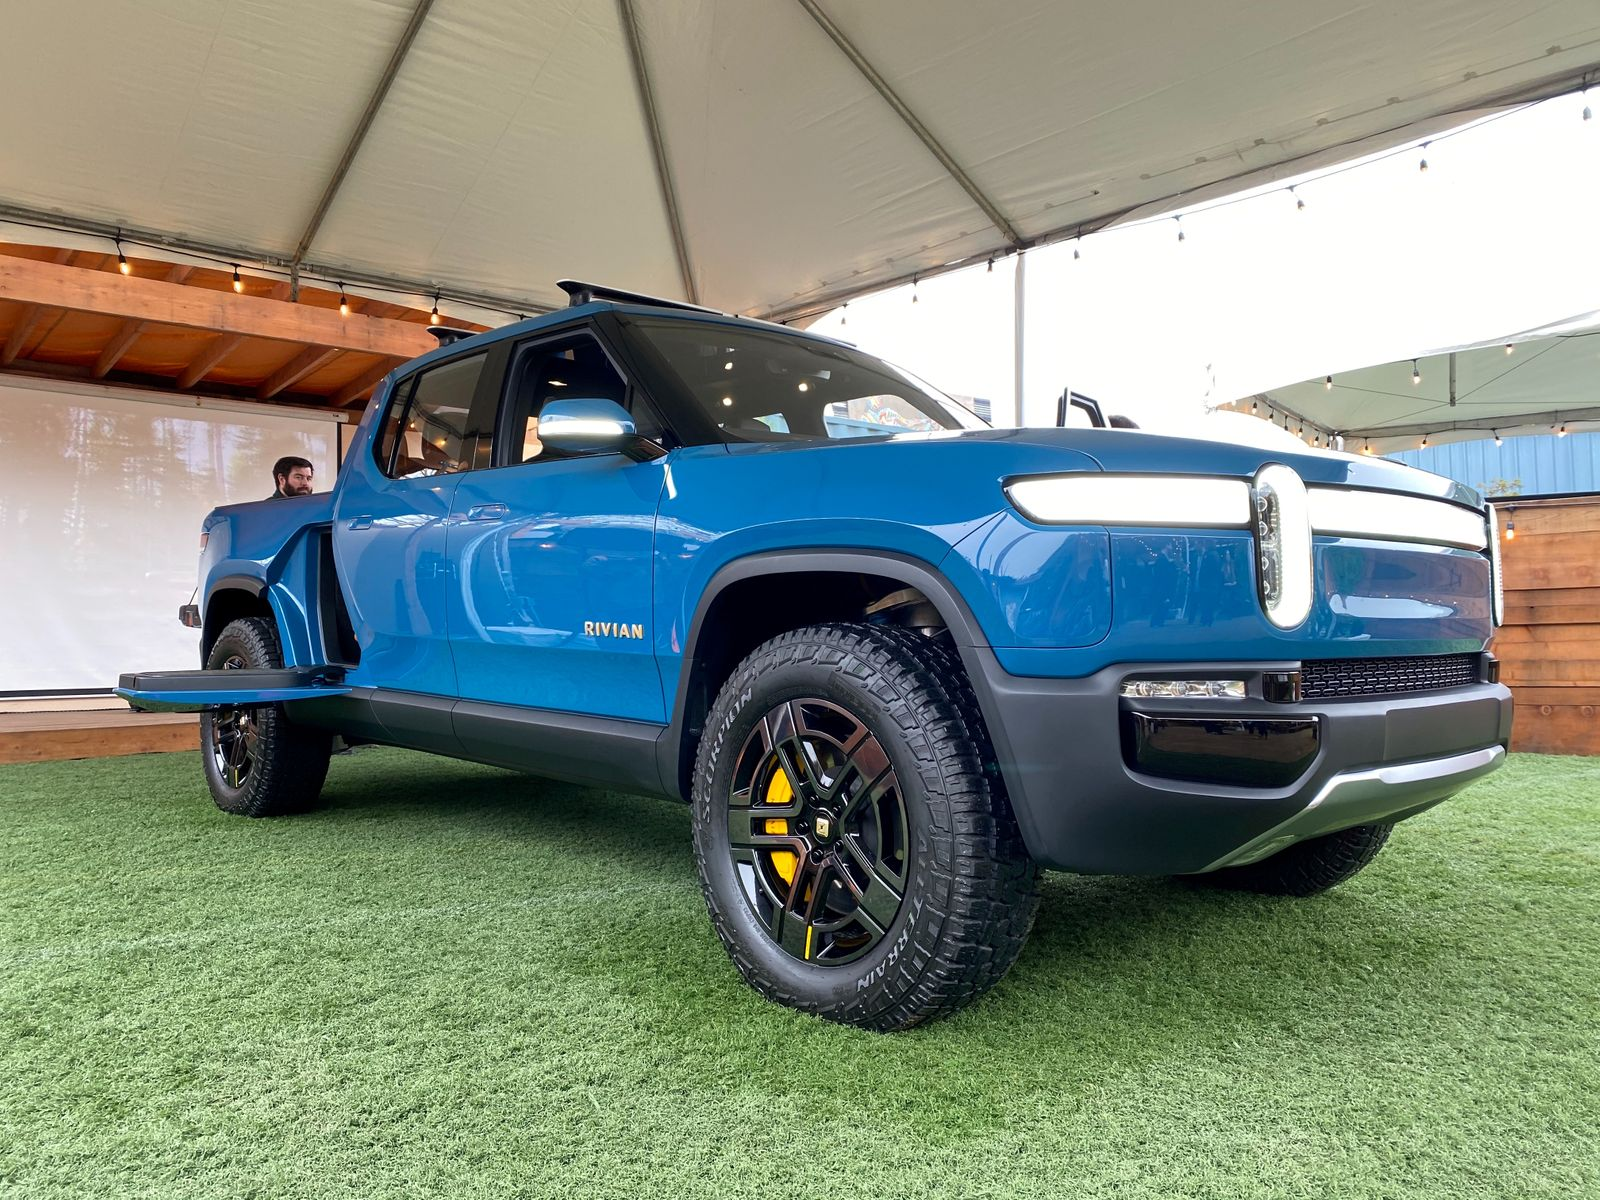 FILE PHOTO: Electric vehicle startup Rivian shows off its SUV truck in Mill Valley